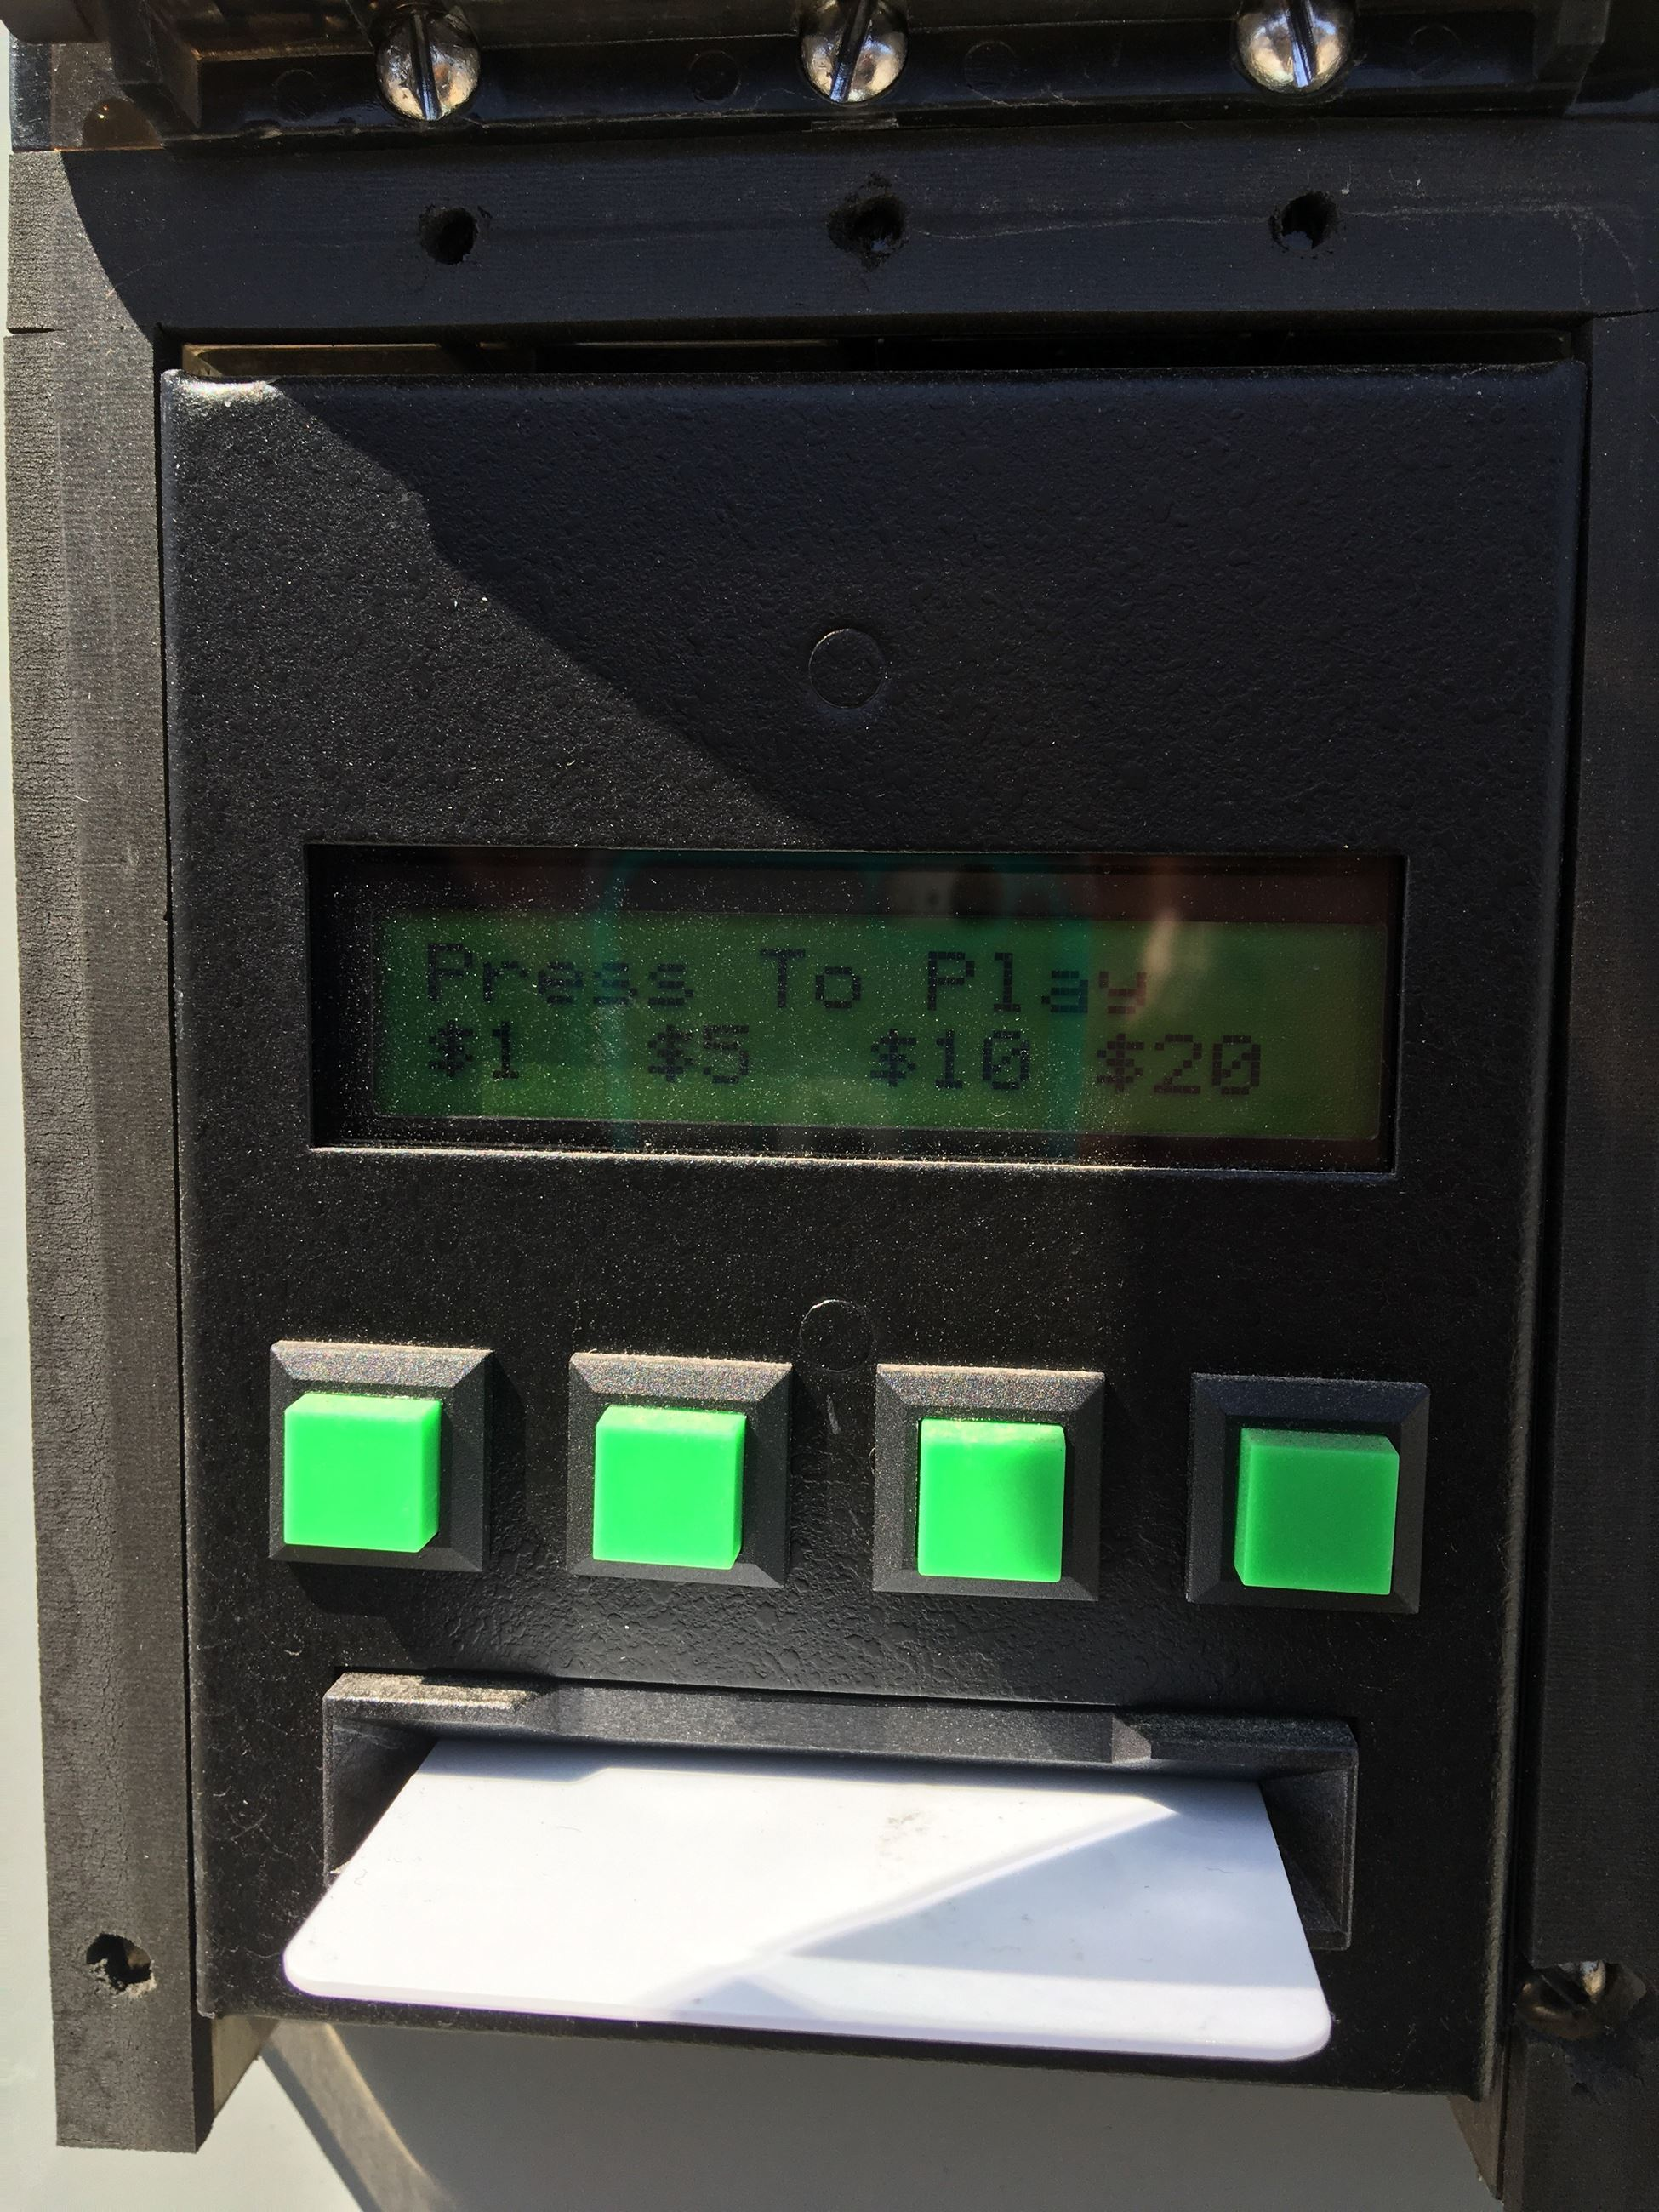 Watersalesman Card Reader Display-Select Payment Amount